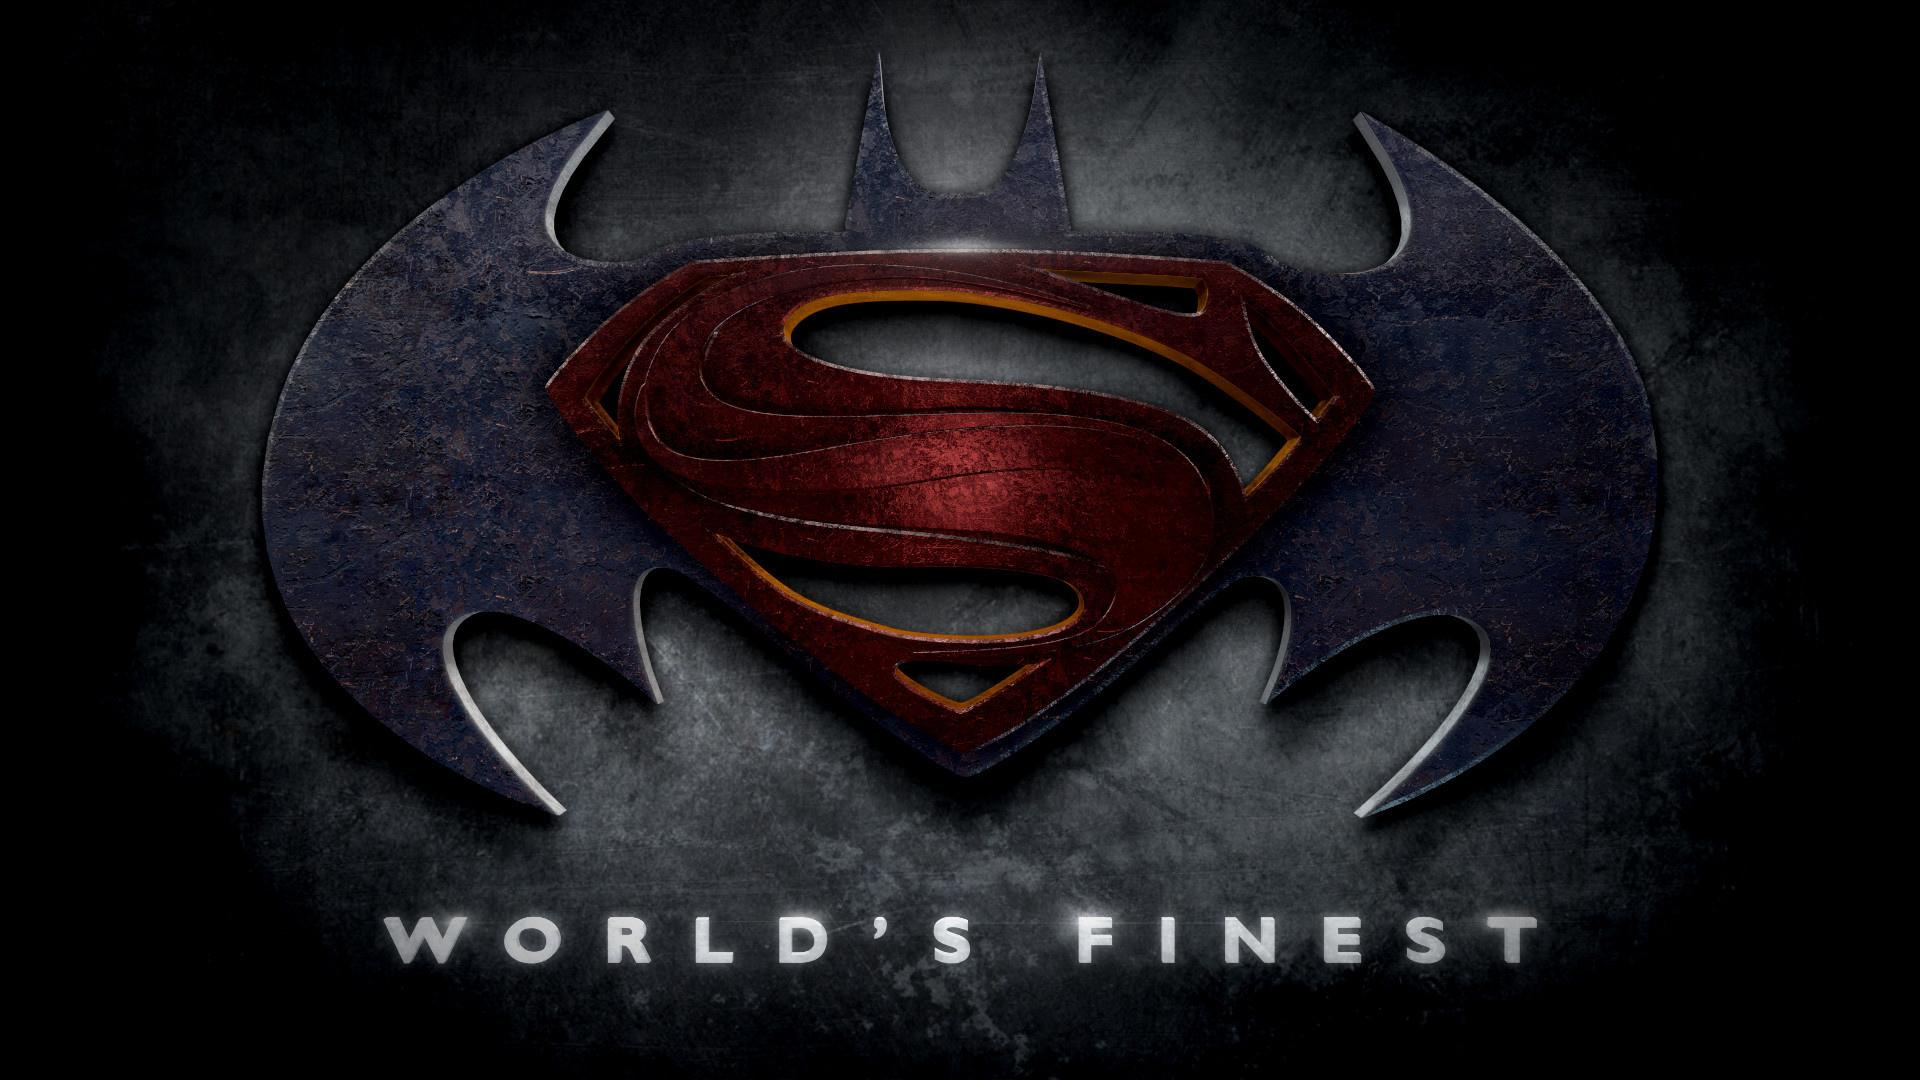 World s Finest at 1280 x 960 size wallpapers HD quality